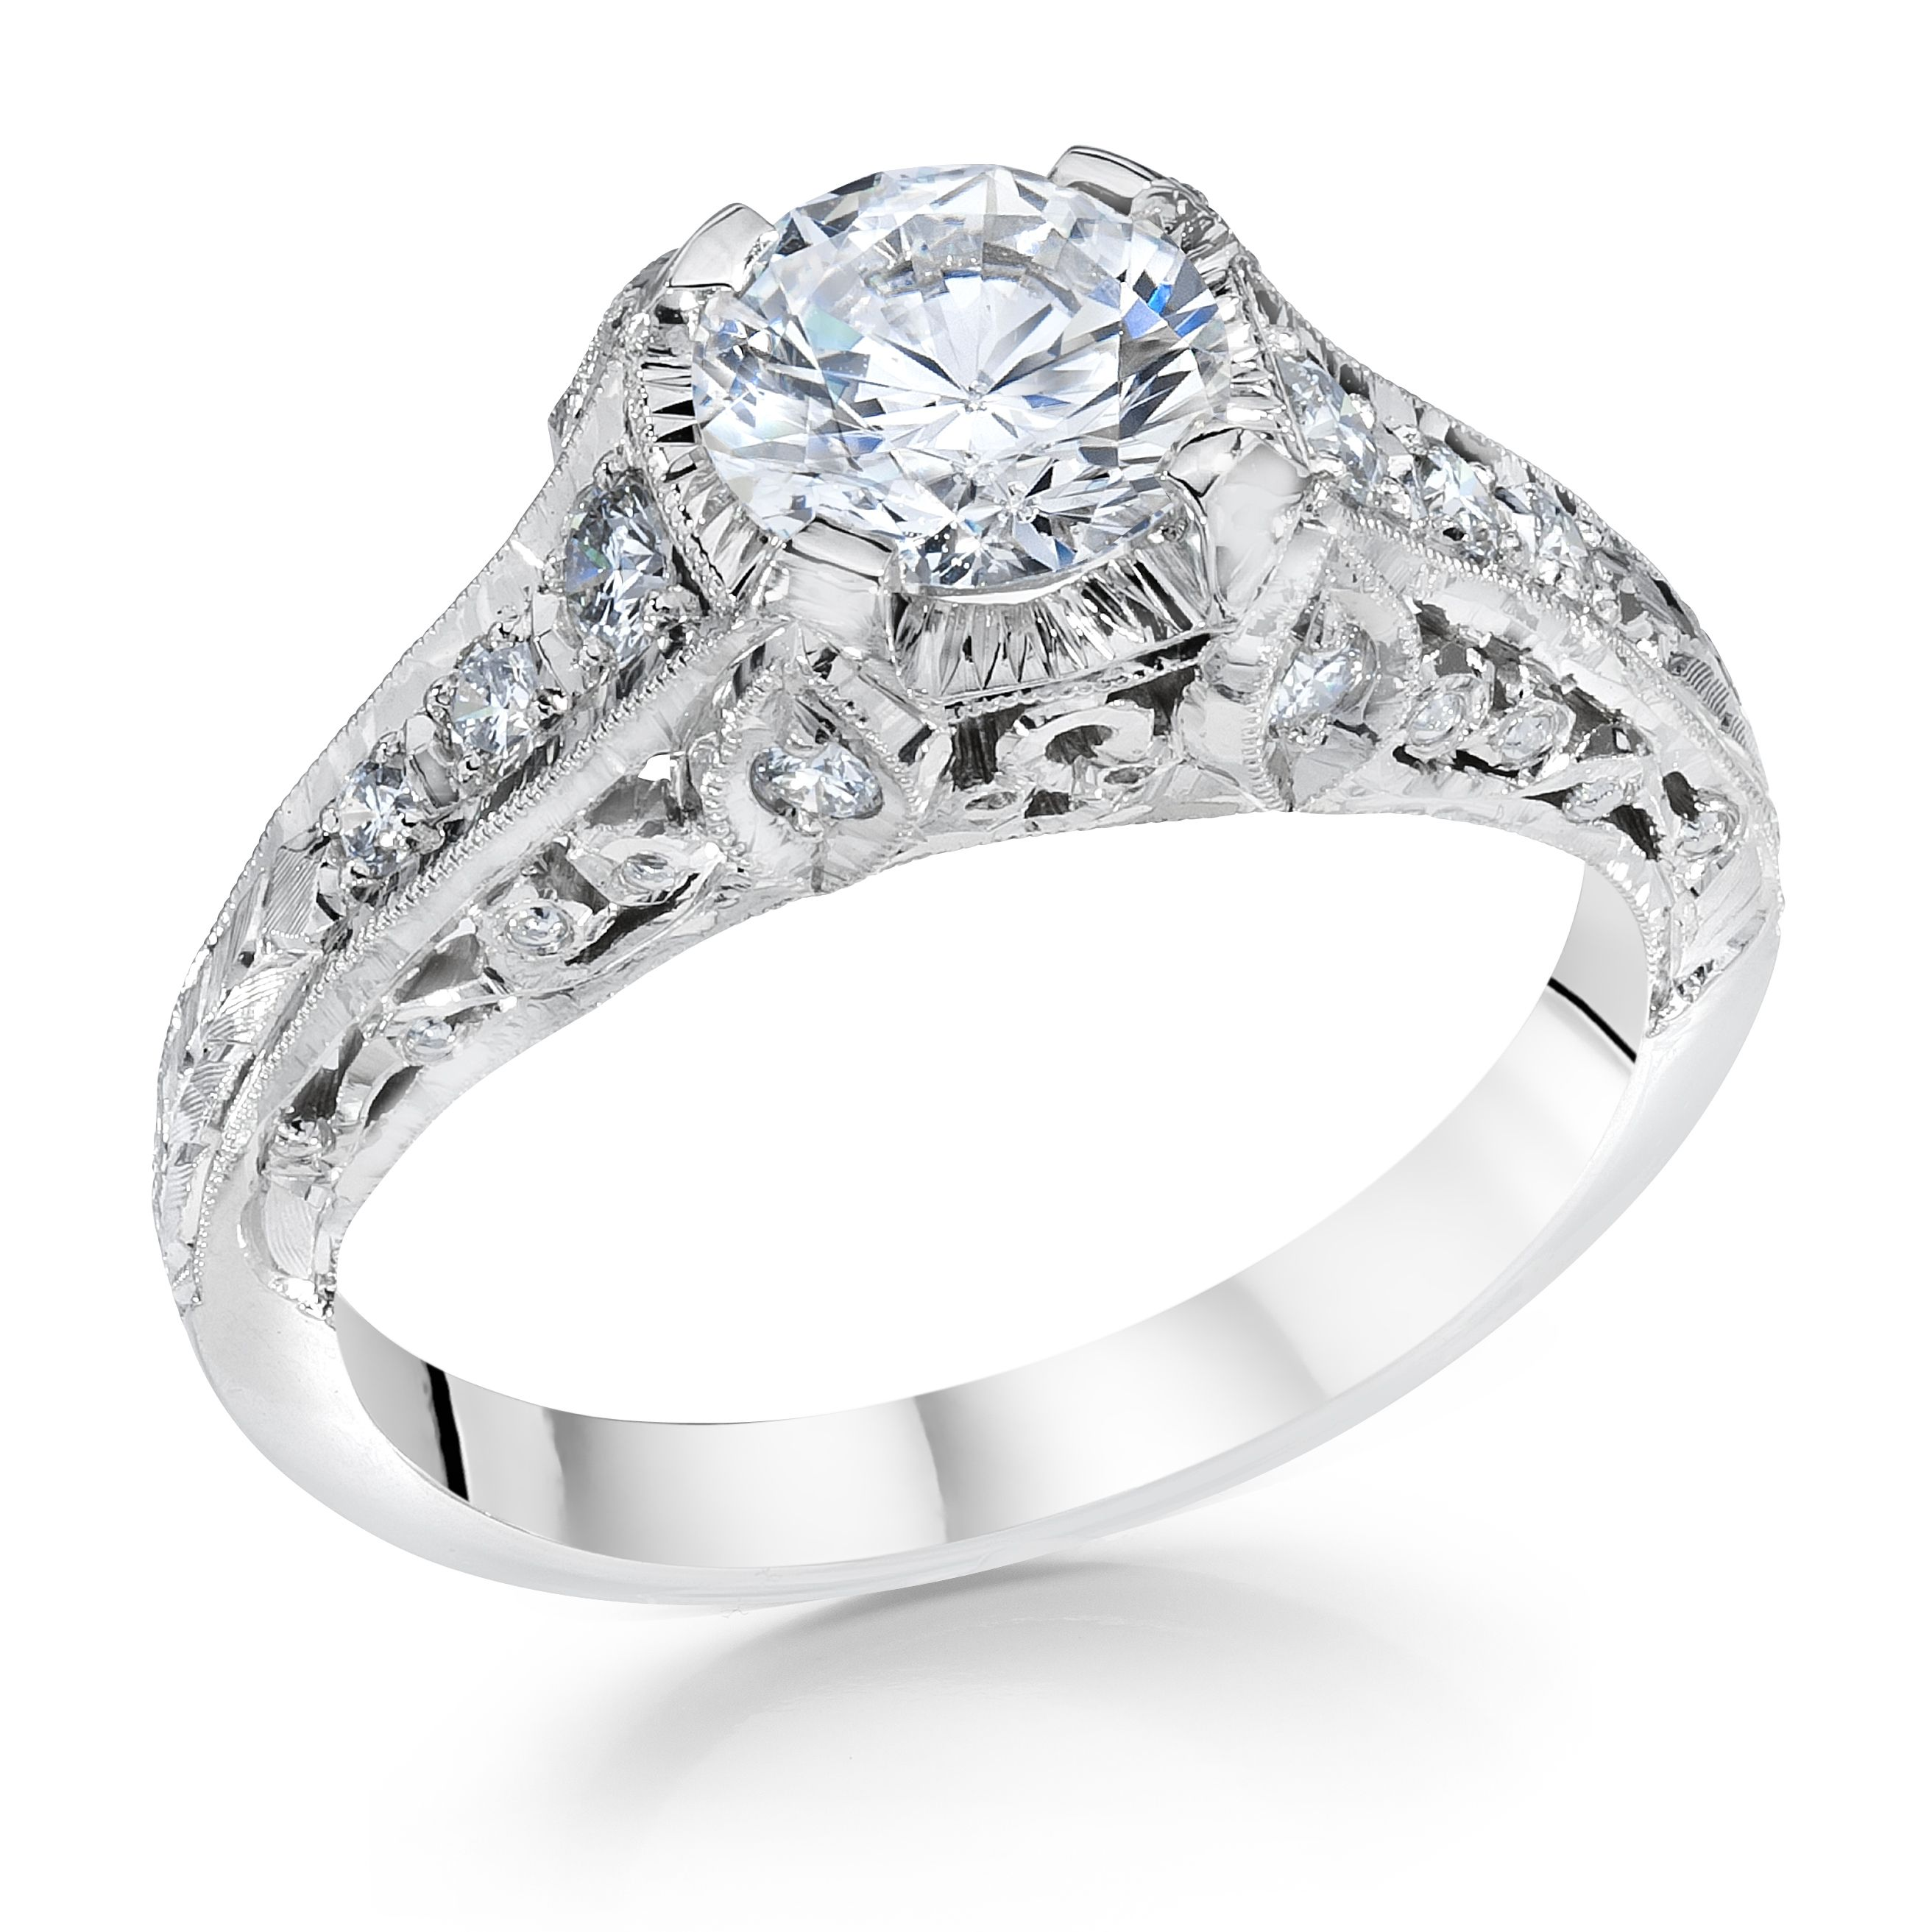 Whitehouse Brothers #8127 Antique Vintage Filligree Engagment Ring in Platinum